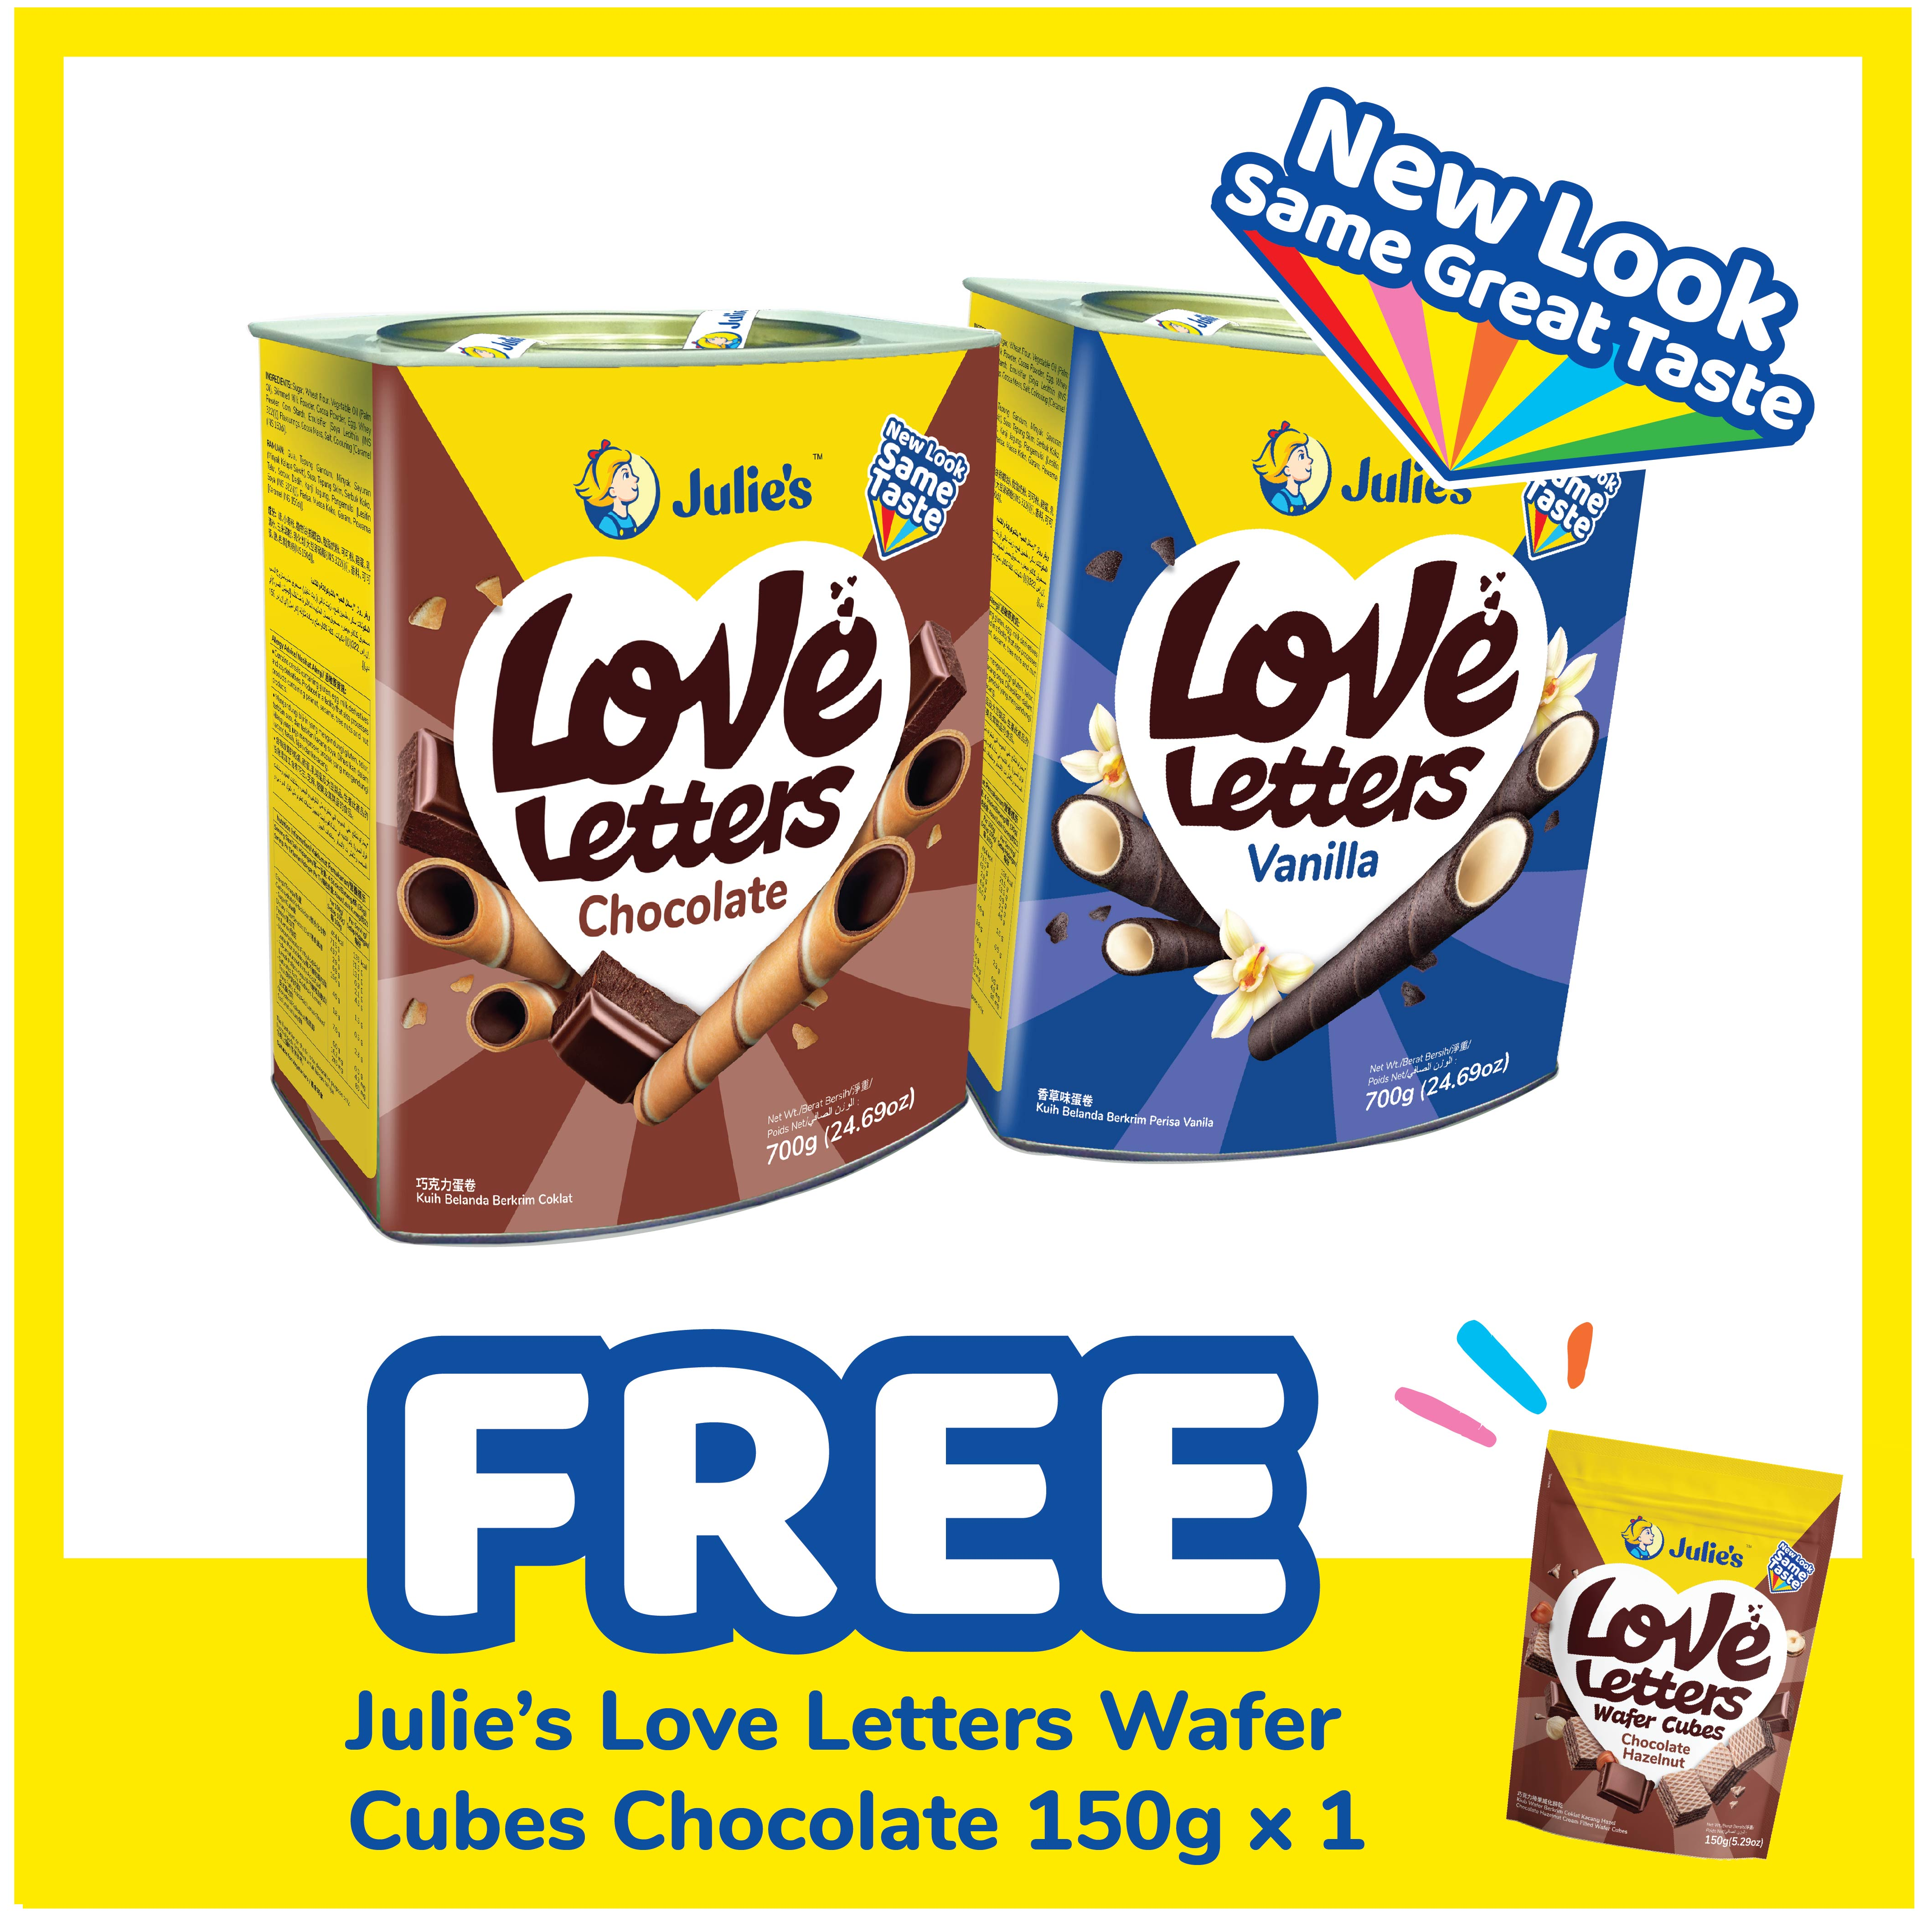 Julie's Love Letters Chocolate & Vanilla 700g x 2 tins [Inner Pack Online Exclusive] + Free Julie's Love Letter Wafer Cube Chocolate 150g x 1 pack [ CNY Promotion Packaging ]